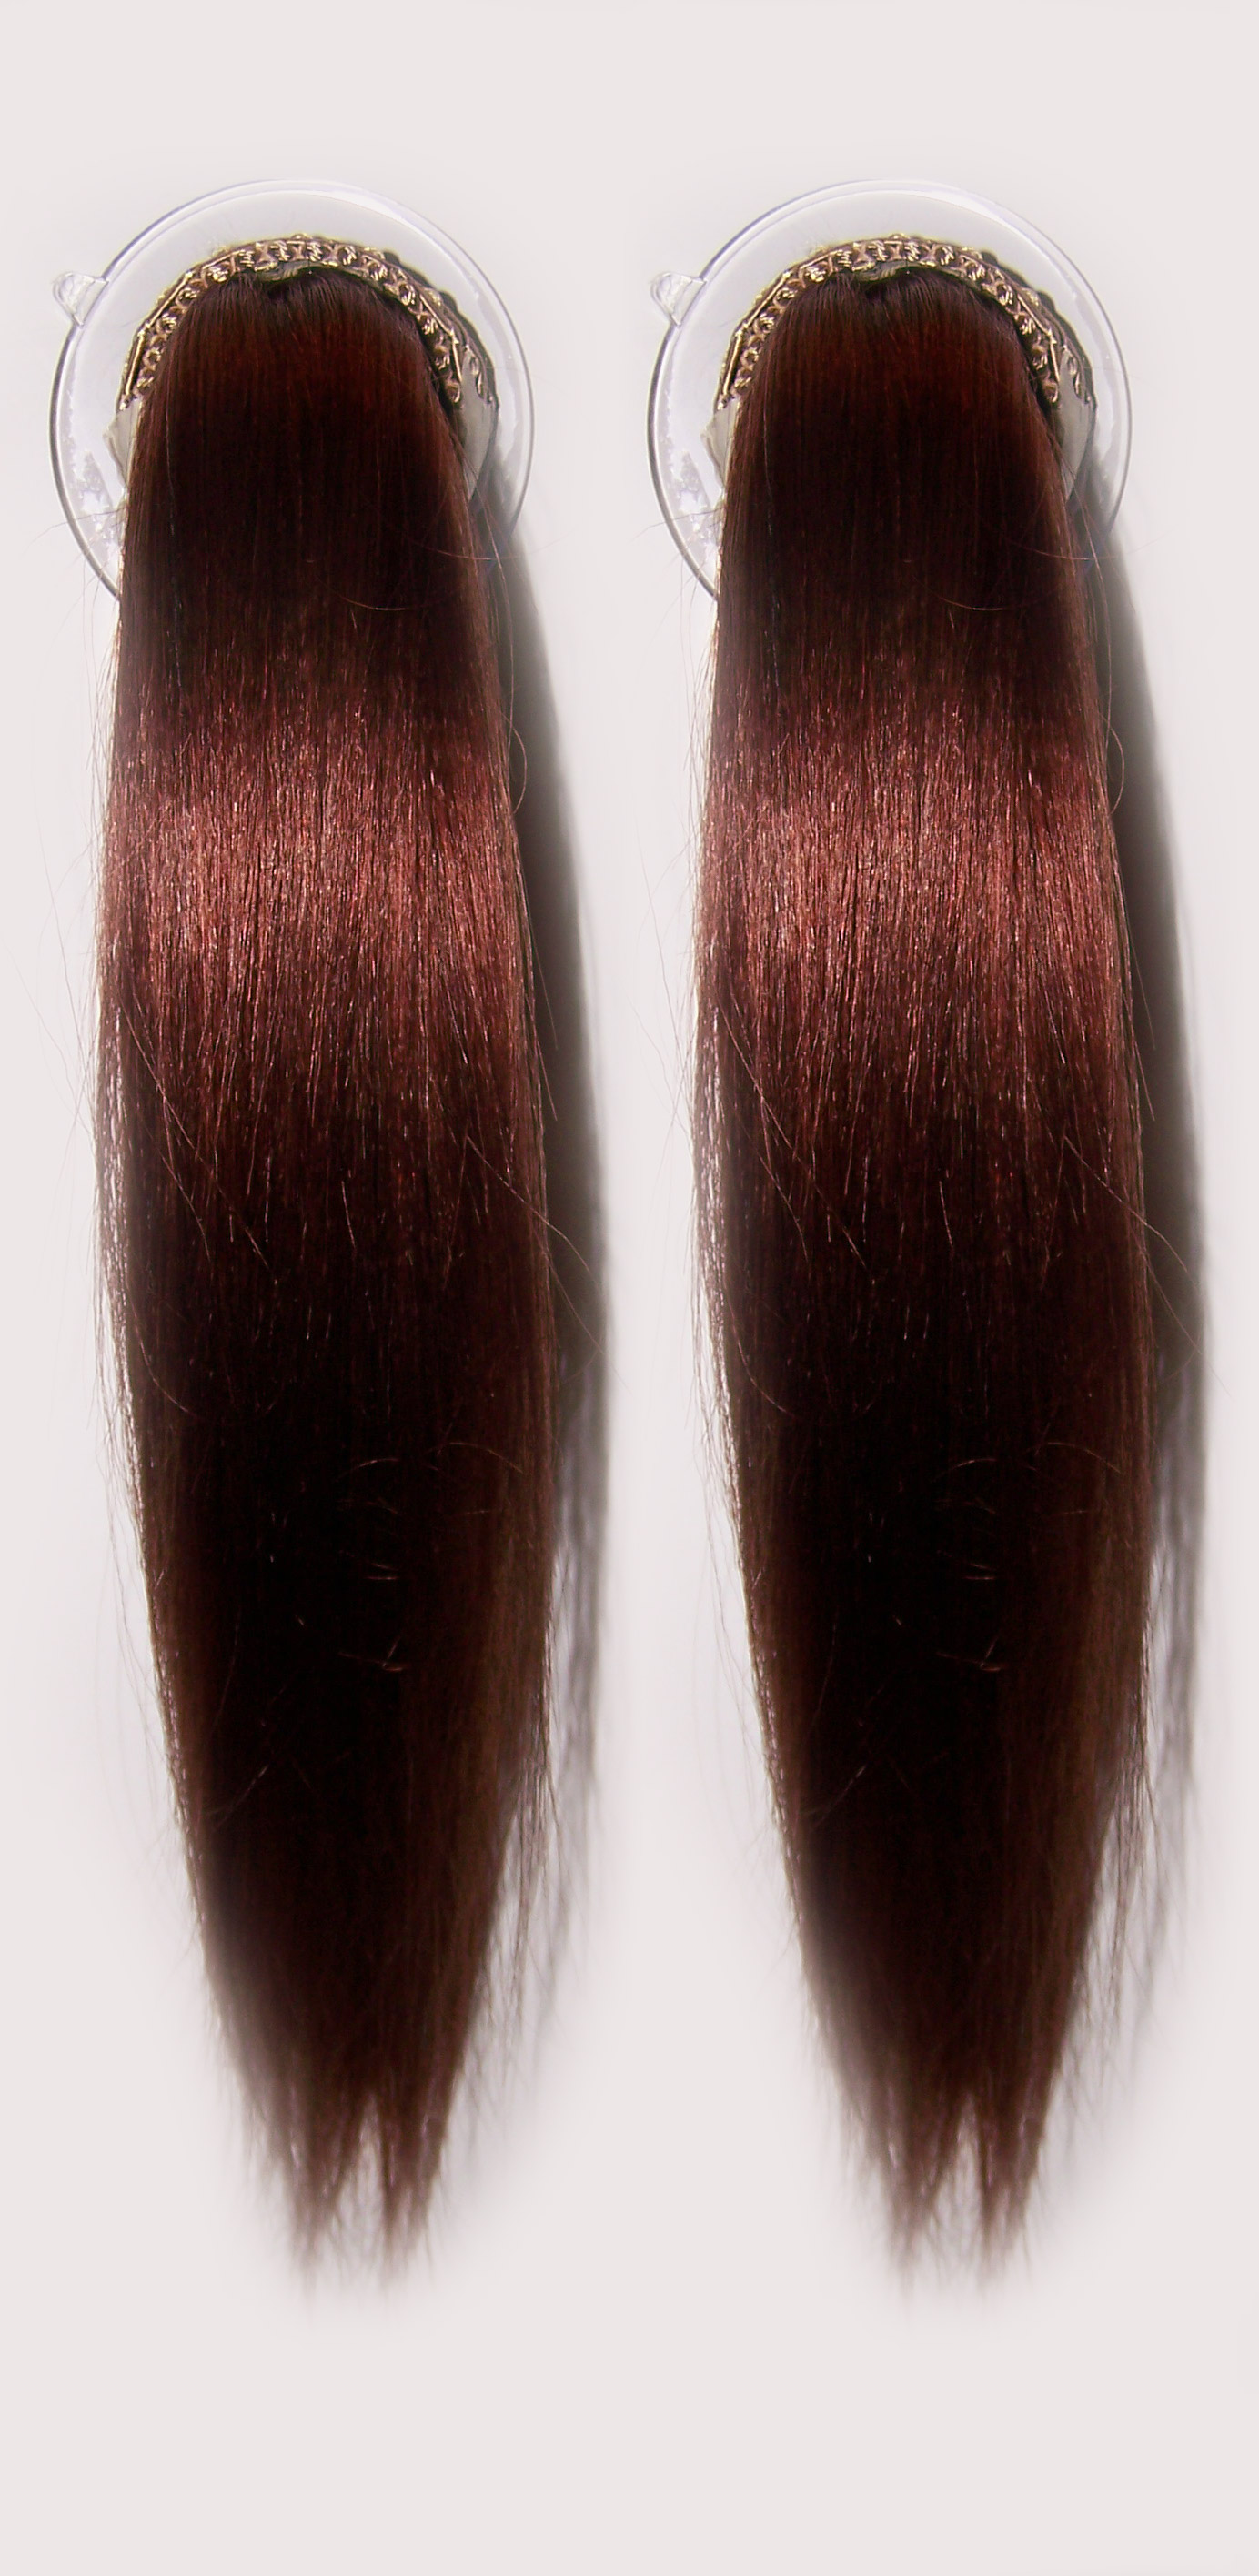 Reddish Brown Hair Single Tail ($24.99)